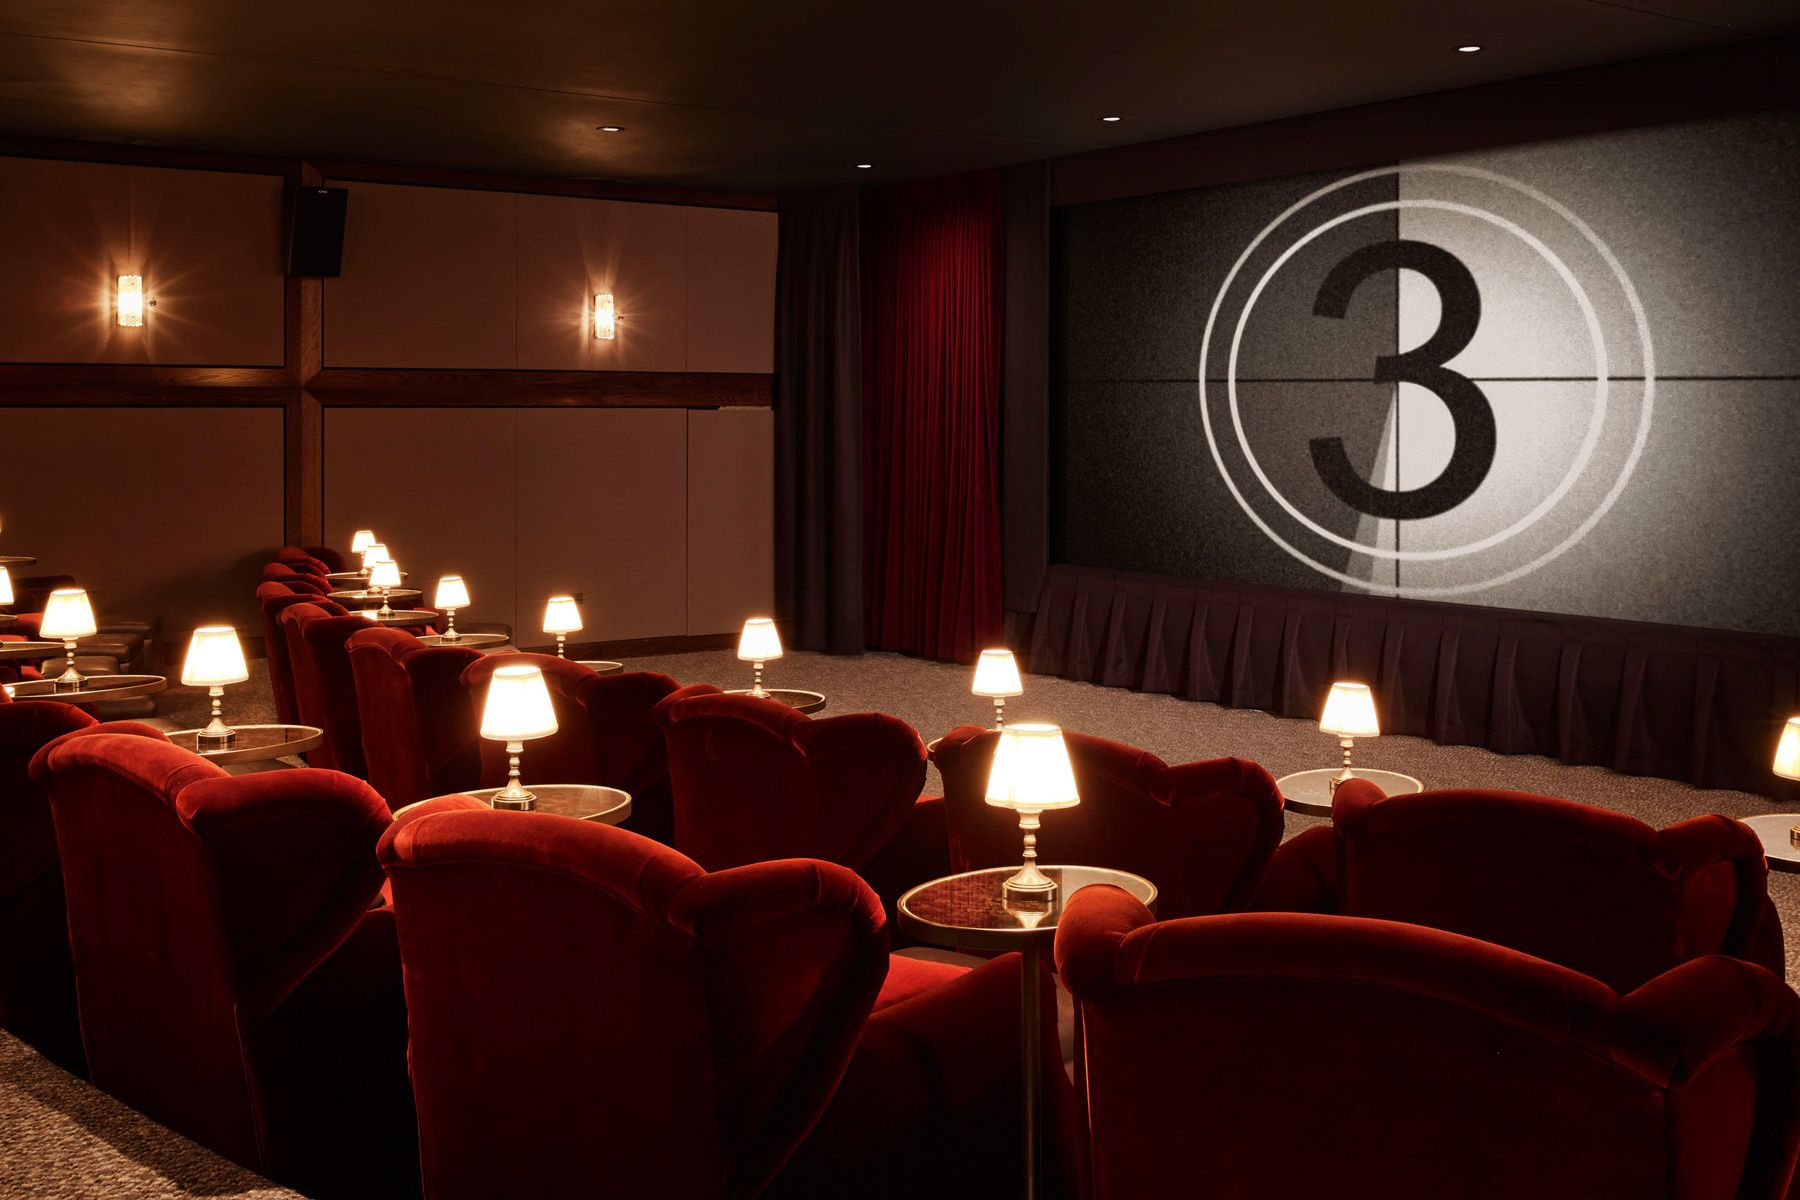 Club Selecto Commercial Space Soho House Home Theater Rooms Wiring A Room Screening Ad Espaa Dr Setup